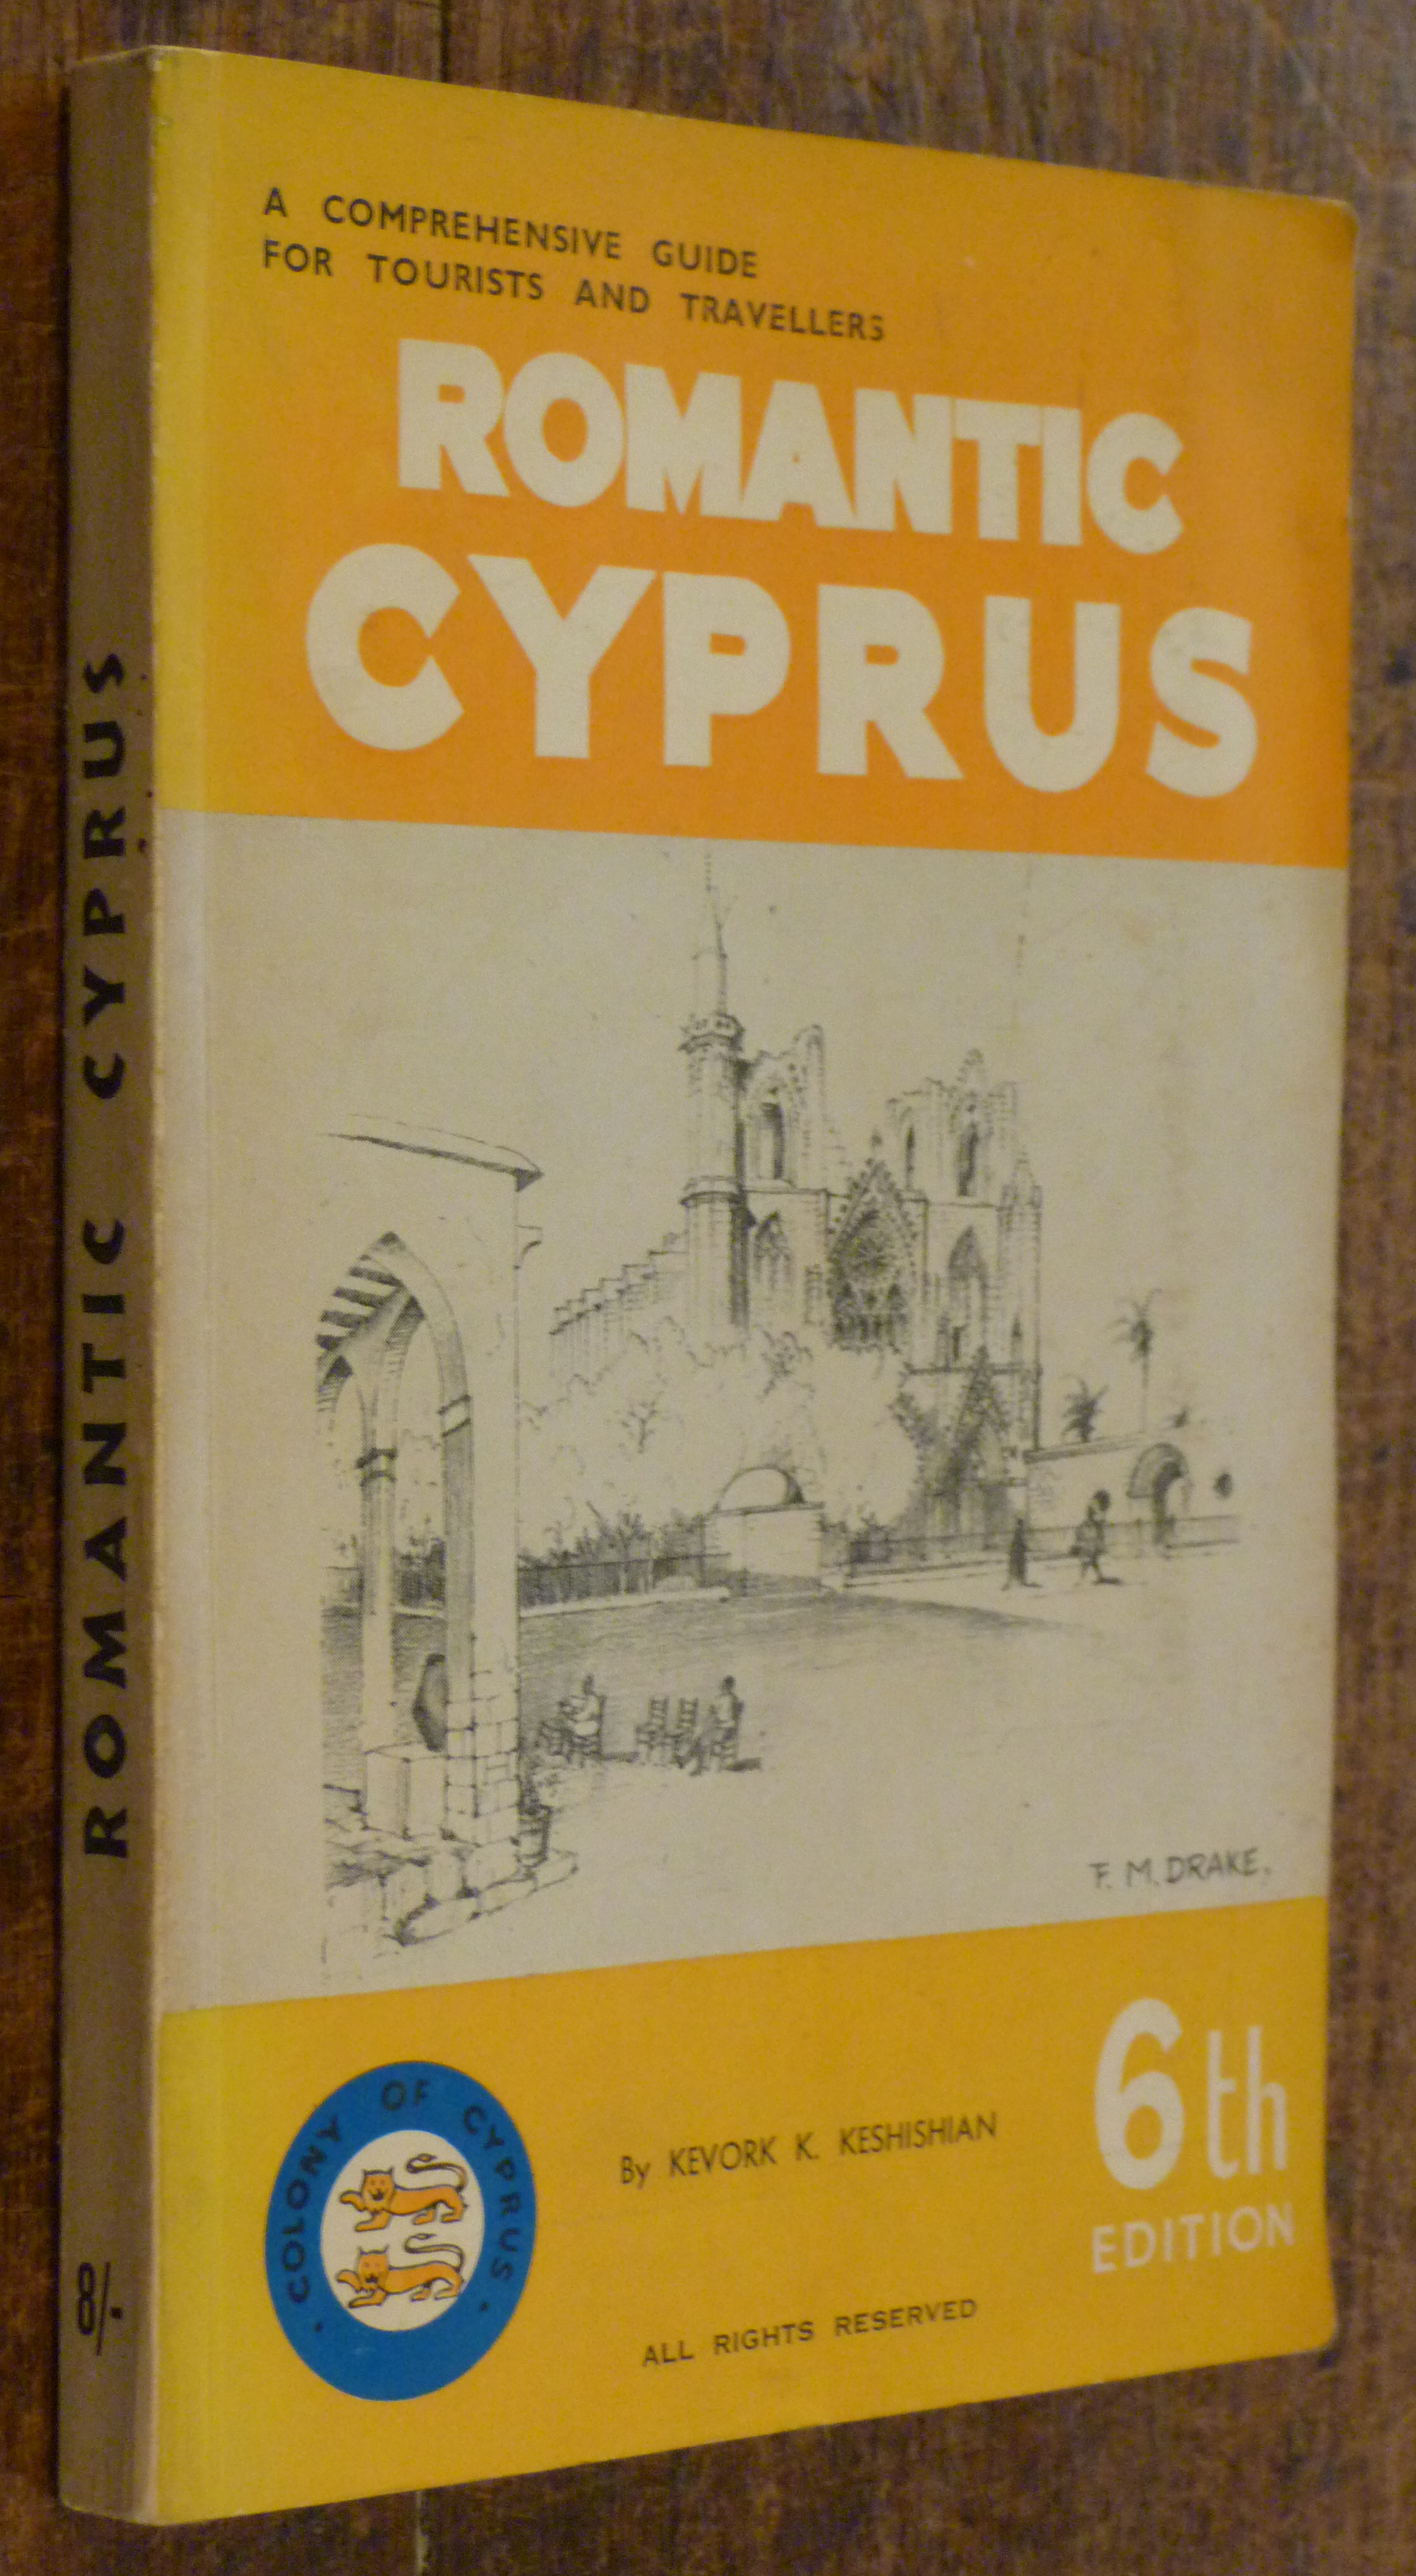 Image for Romantic Cyprus  6th Edition. Revised  Acomprehensive Guide for Tourists and Travellers